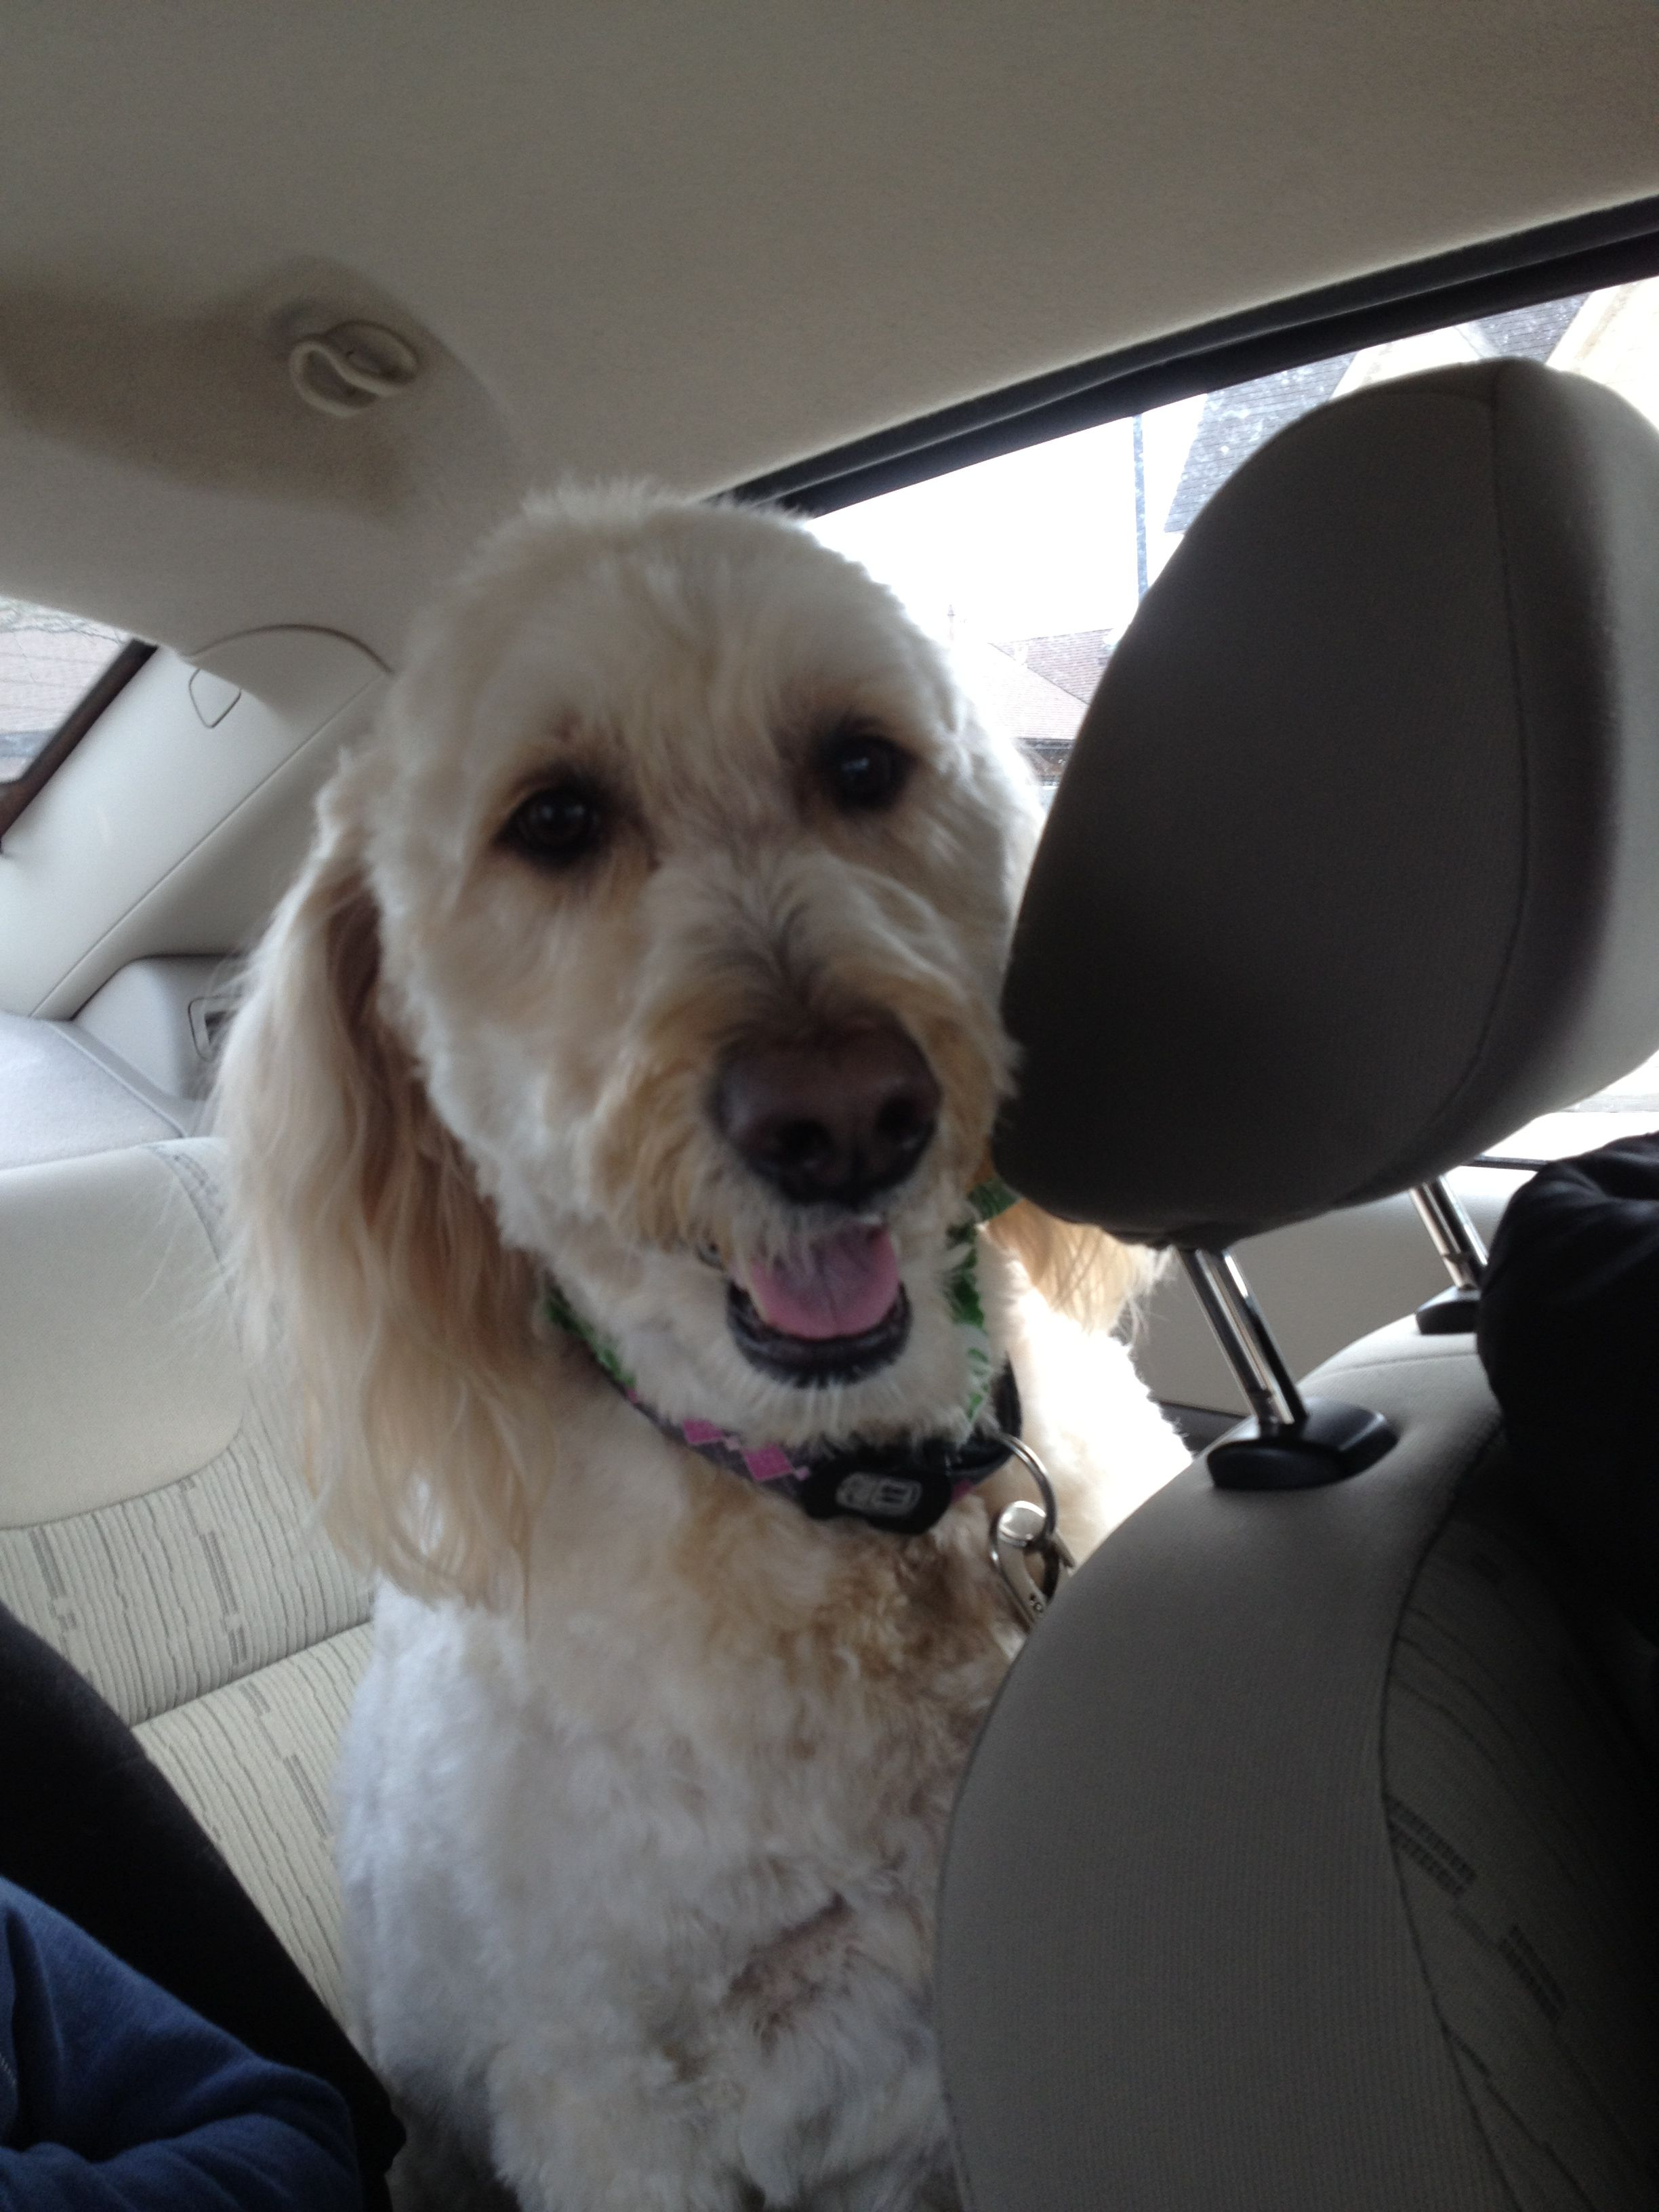 I love her!! Golden-doodles are the best dogs